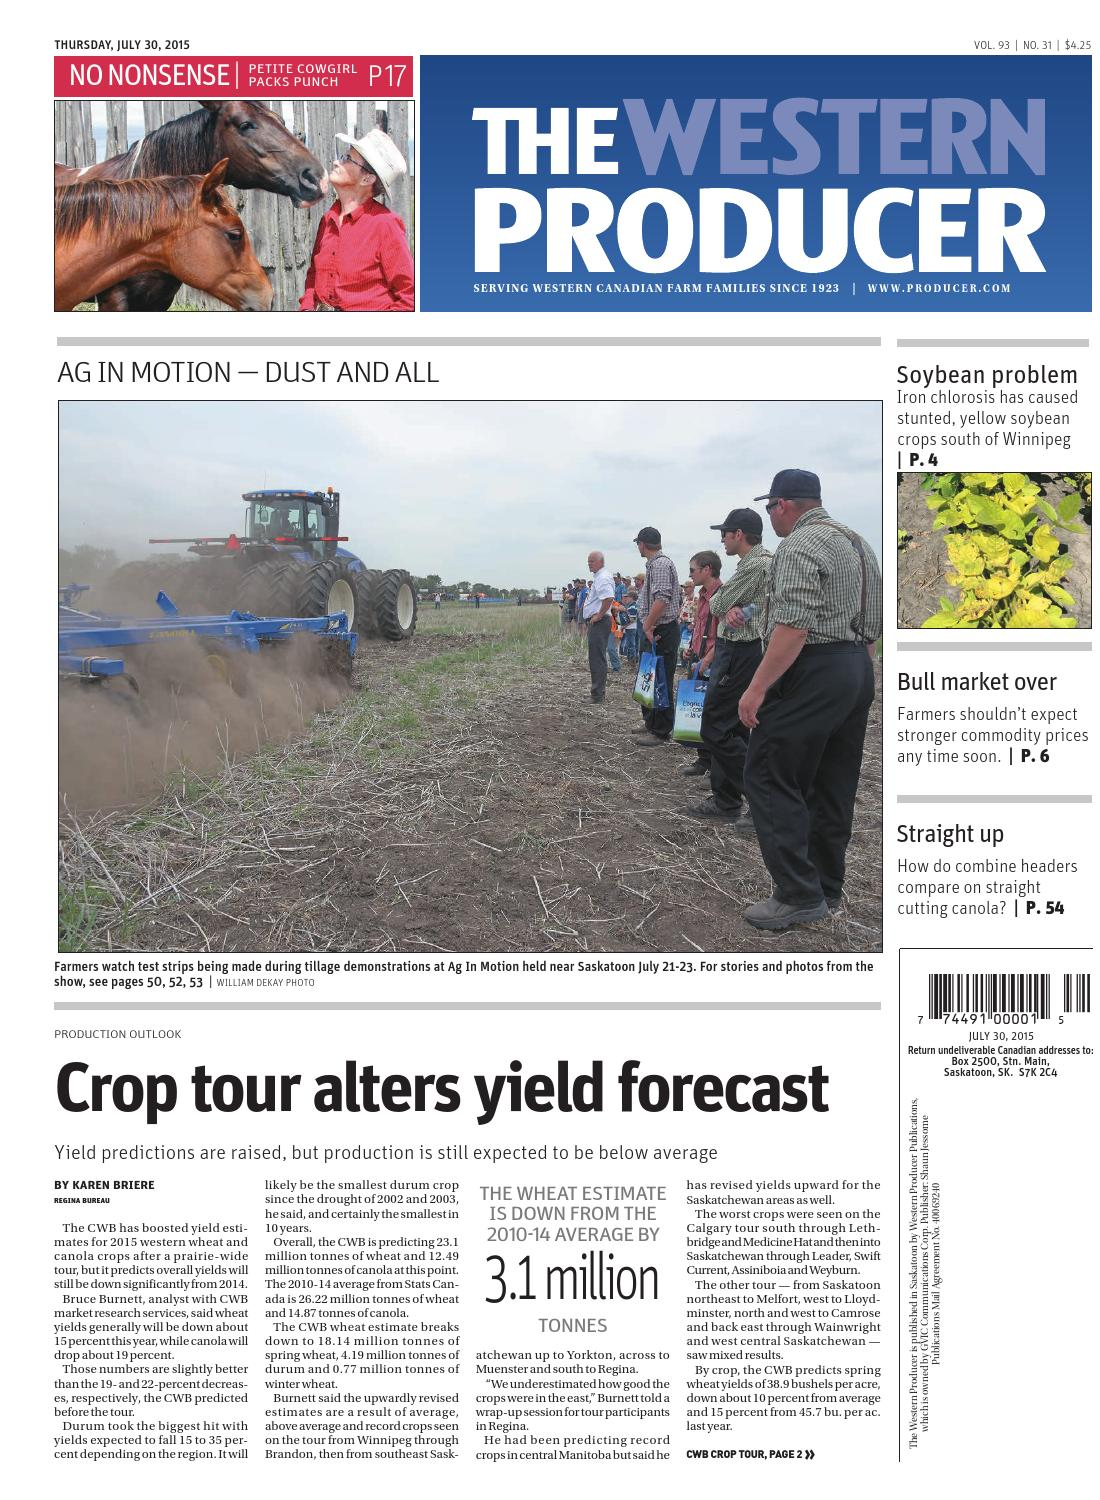 The western producer july 30, 2015 by The Western Producer